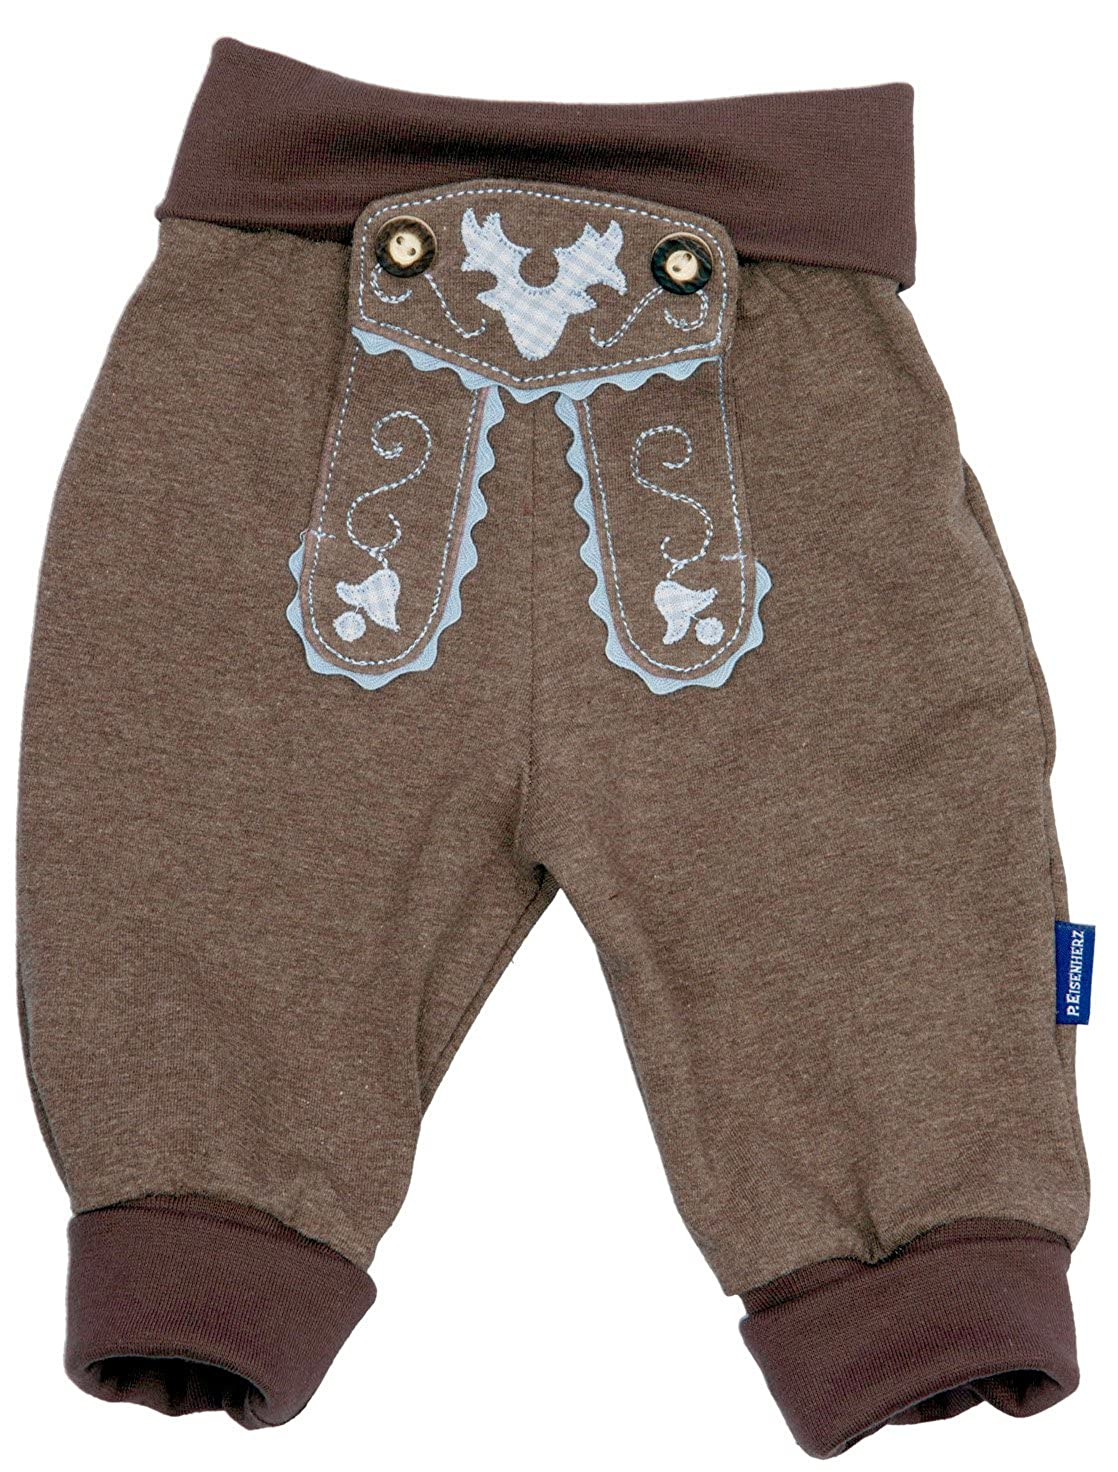 Bavaria Shop Baby Jogging Shorts Leather Look Trousers 100% Cotton in Car Sticker – Brown Bavariashop GmbH